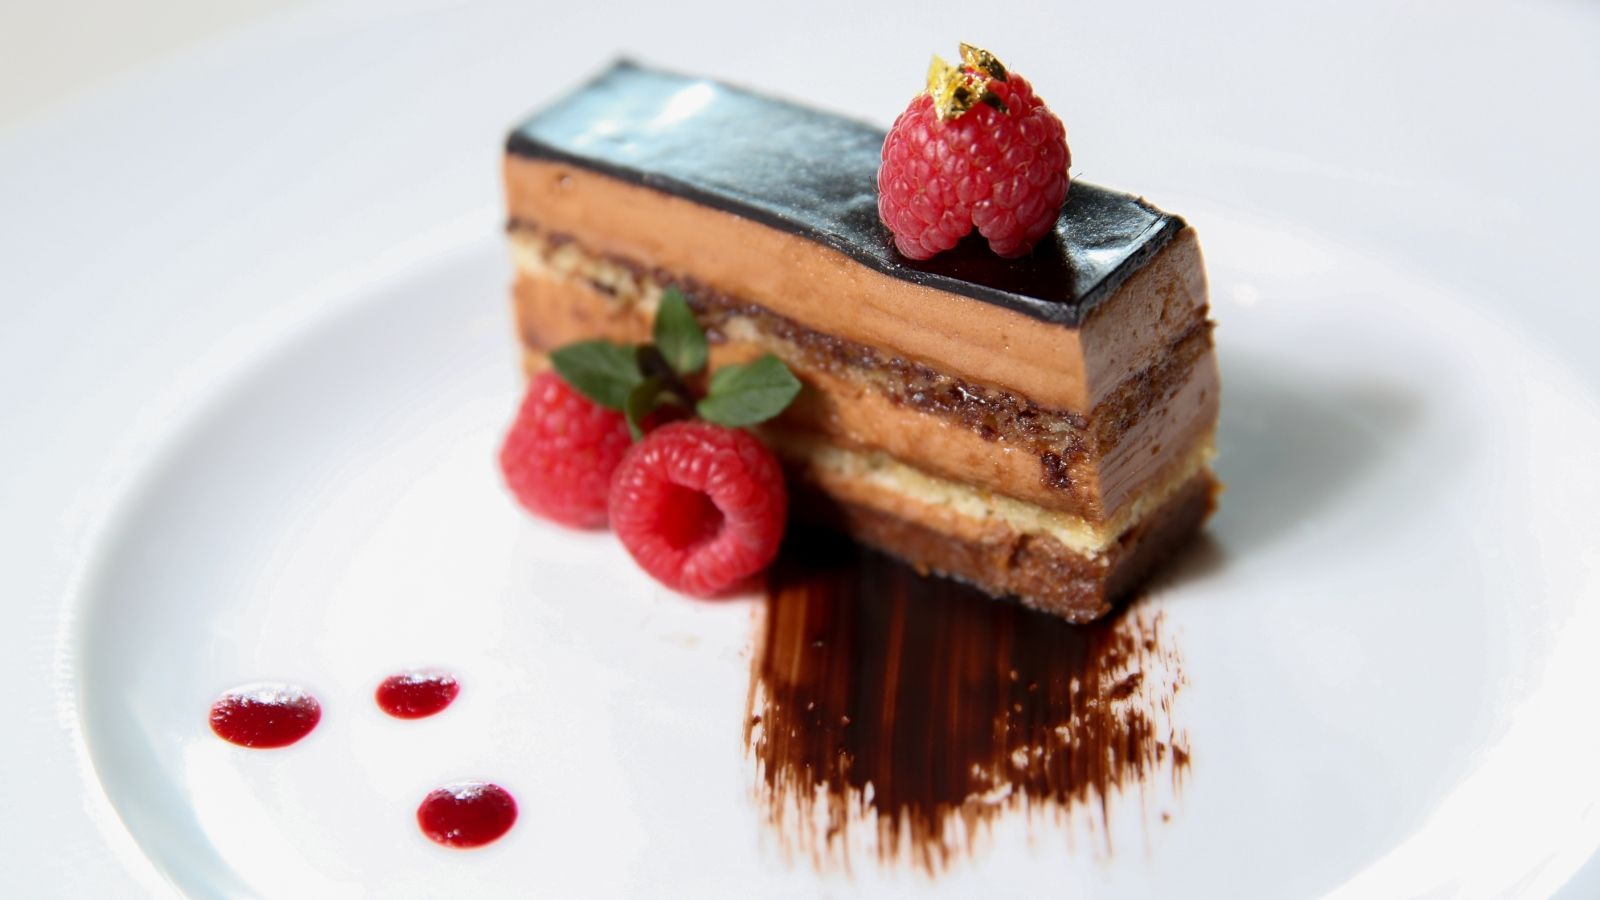 Carmelia Opera Cake at Grill Restaurant at The St. Regis San Francisco